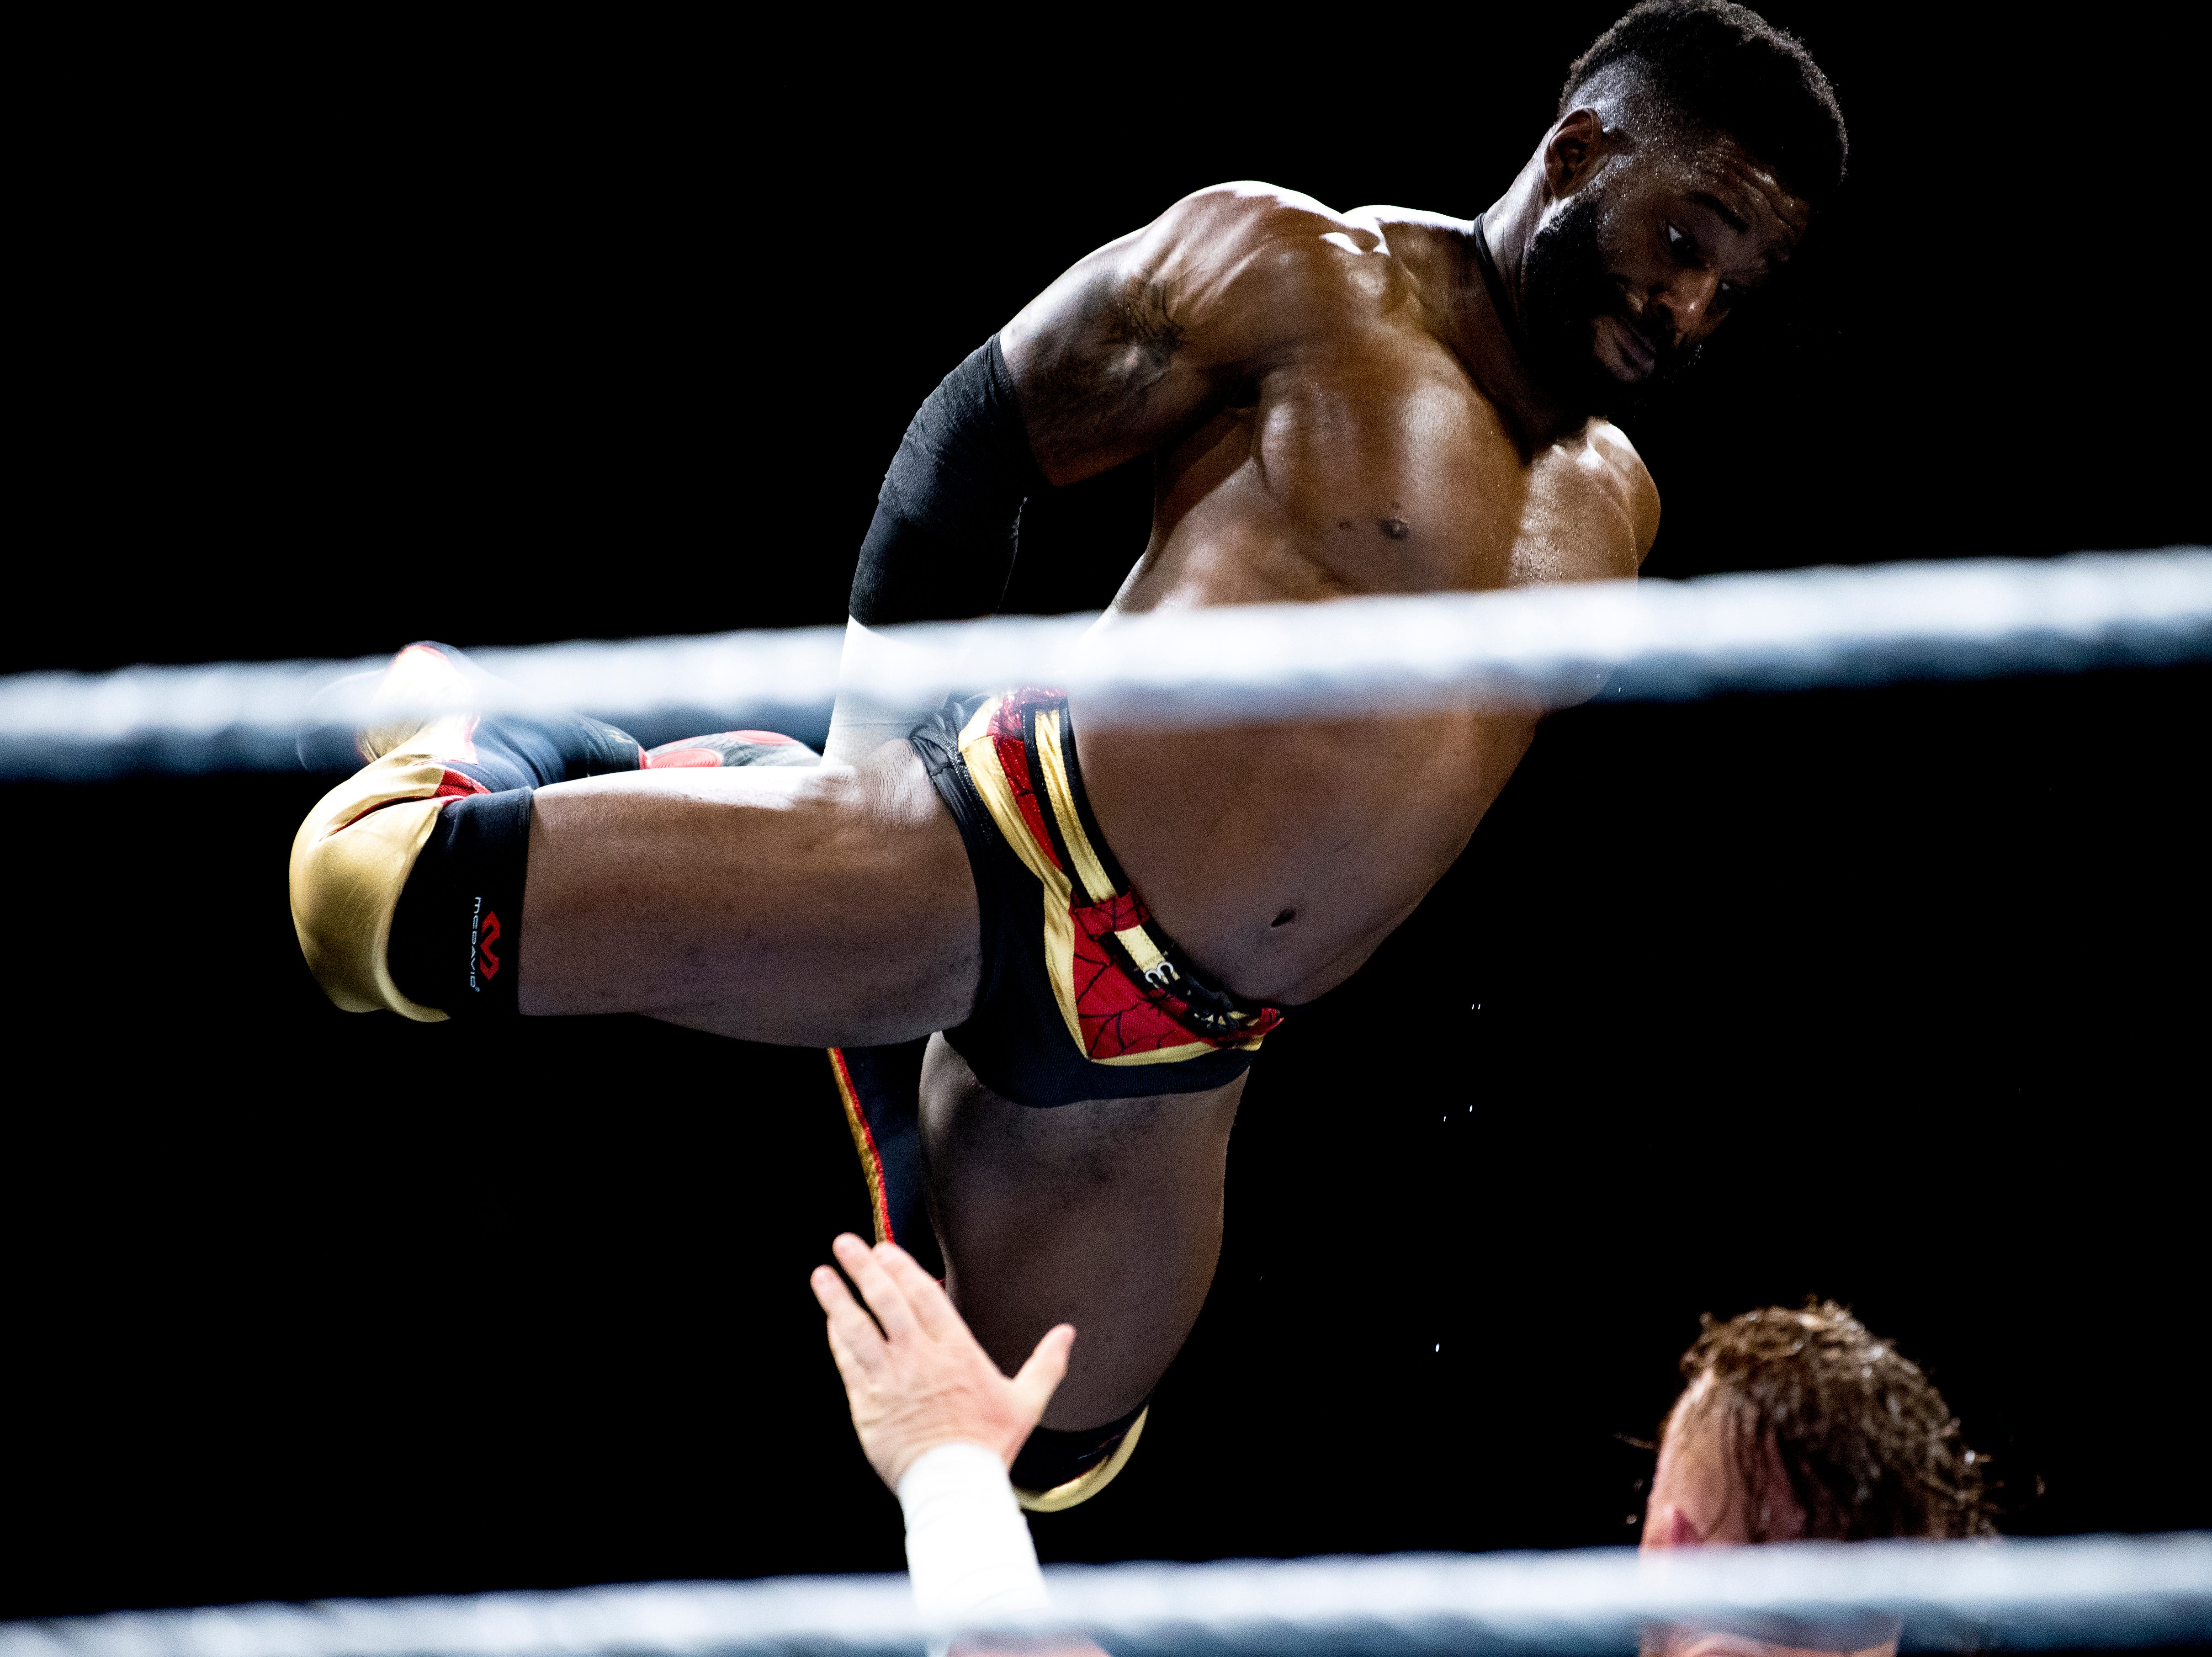 Cedric Alexander leaps onto Buddy Murphy for the Cruiserweight Championship Belt during a WWE Live performance at the Knoxville Civic Coliseum in Knoxville, Tennessee on Saturday, January 12, 2019. *KNOXVILLE NEWS SENTINEL USE ONLY*